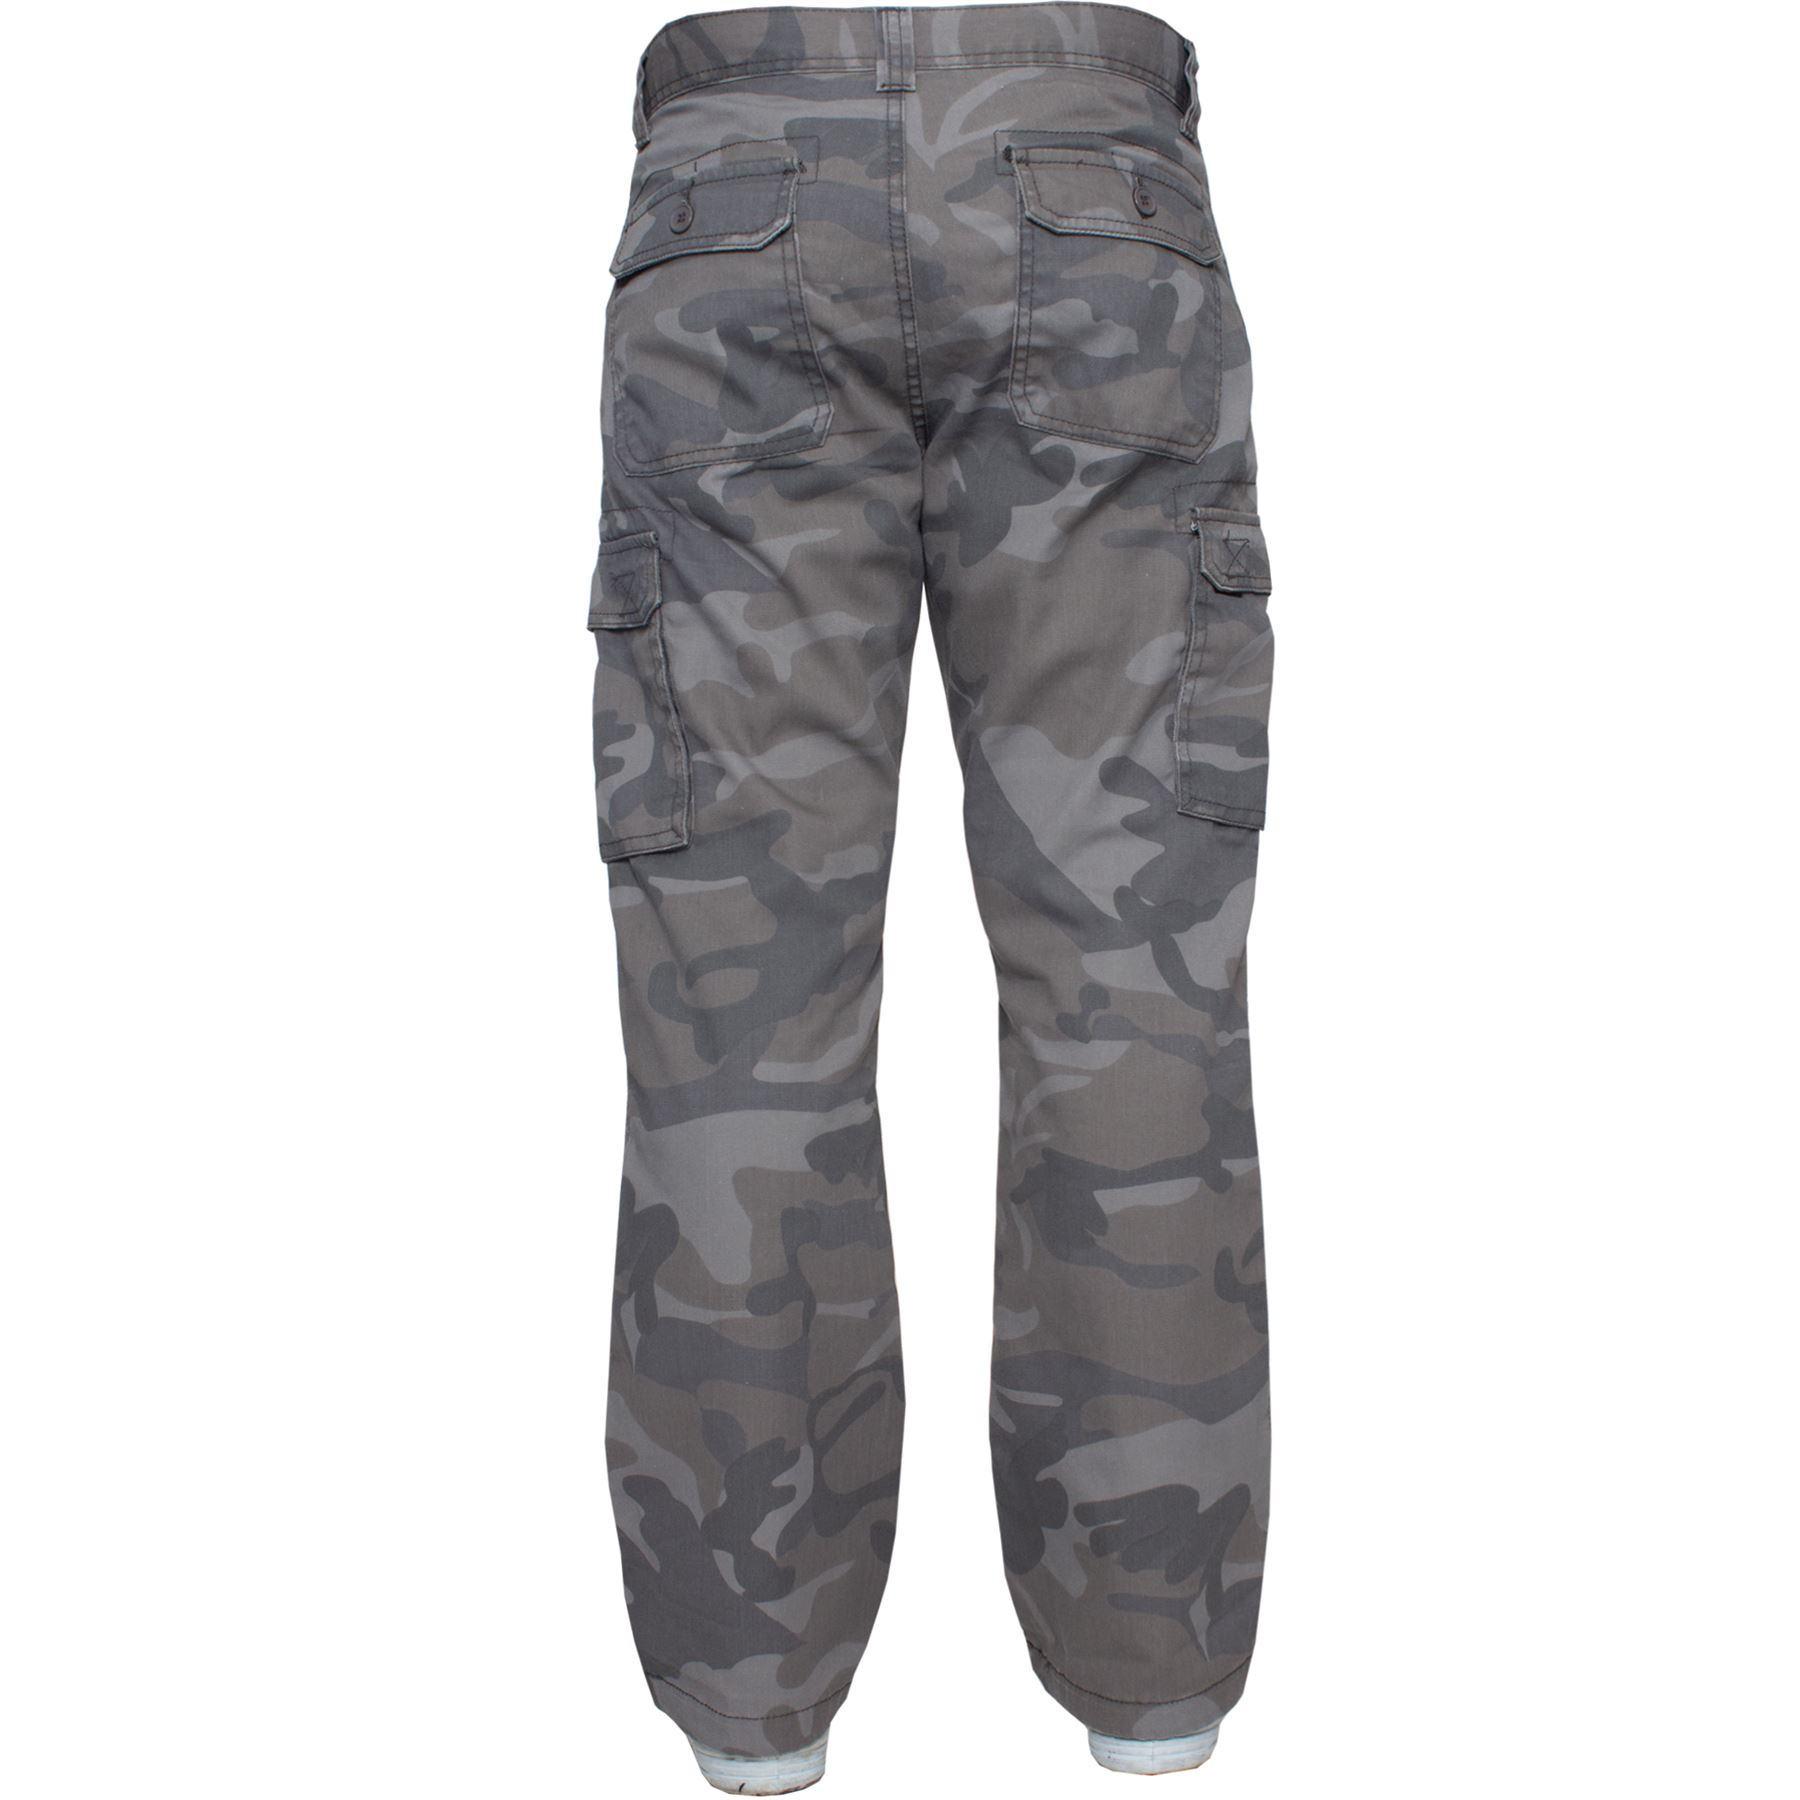 Kruze-Mens-Military-Combat-Trousers-Camouflage-Cargo-Camo-Army-Casual-Work-Pants miniatura 13